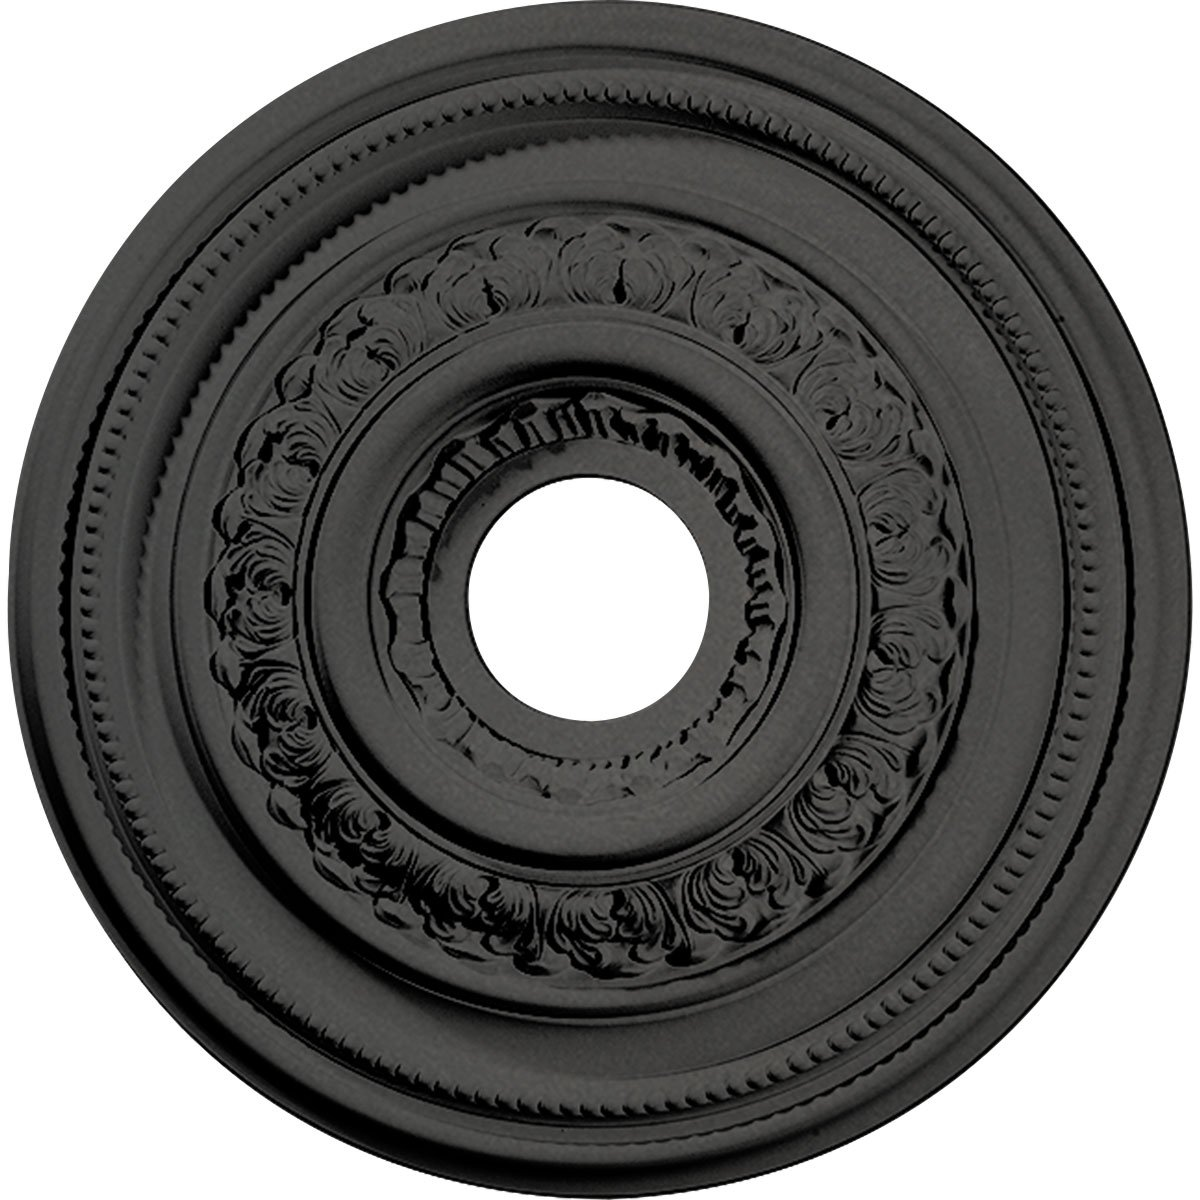 Ekena Millwork CM17OLSGS Orleans Ceiling Medallion fits Canopies up to 4 5/8'', Steel Gray